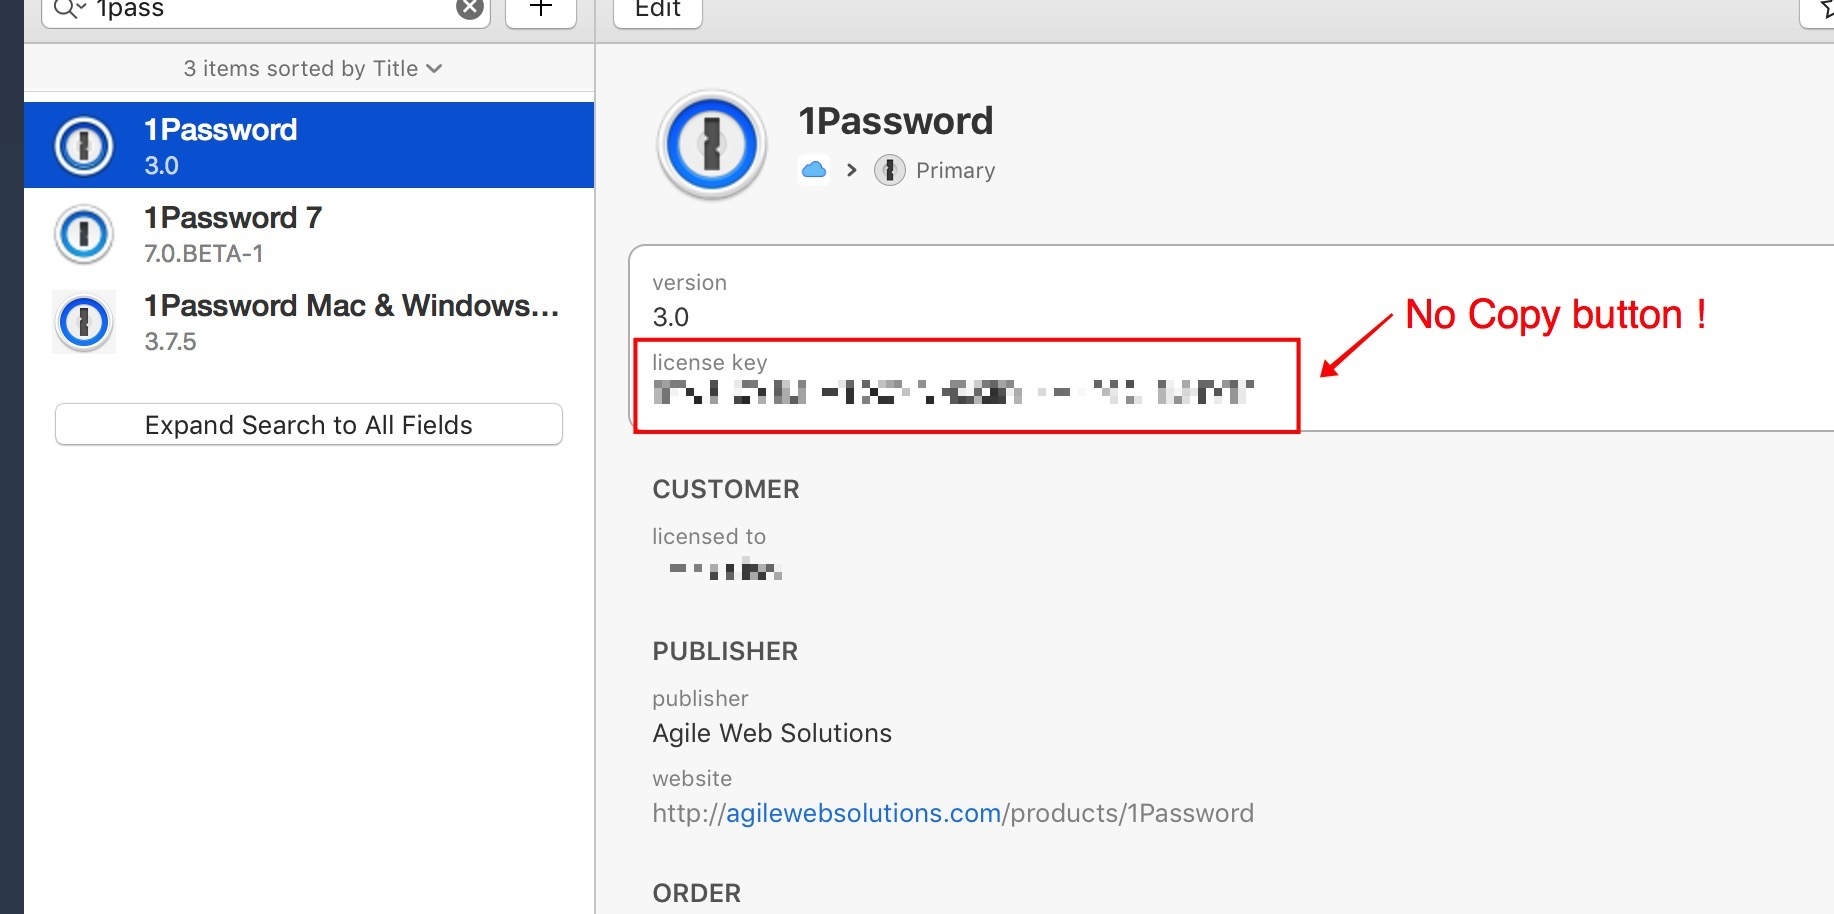 Can't copy license Key from 1Password 7b1 (previously working in V6